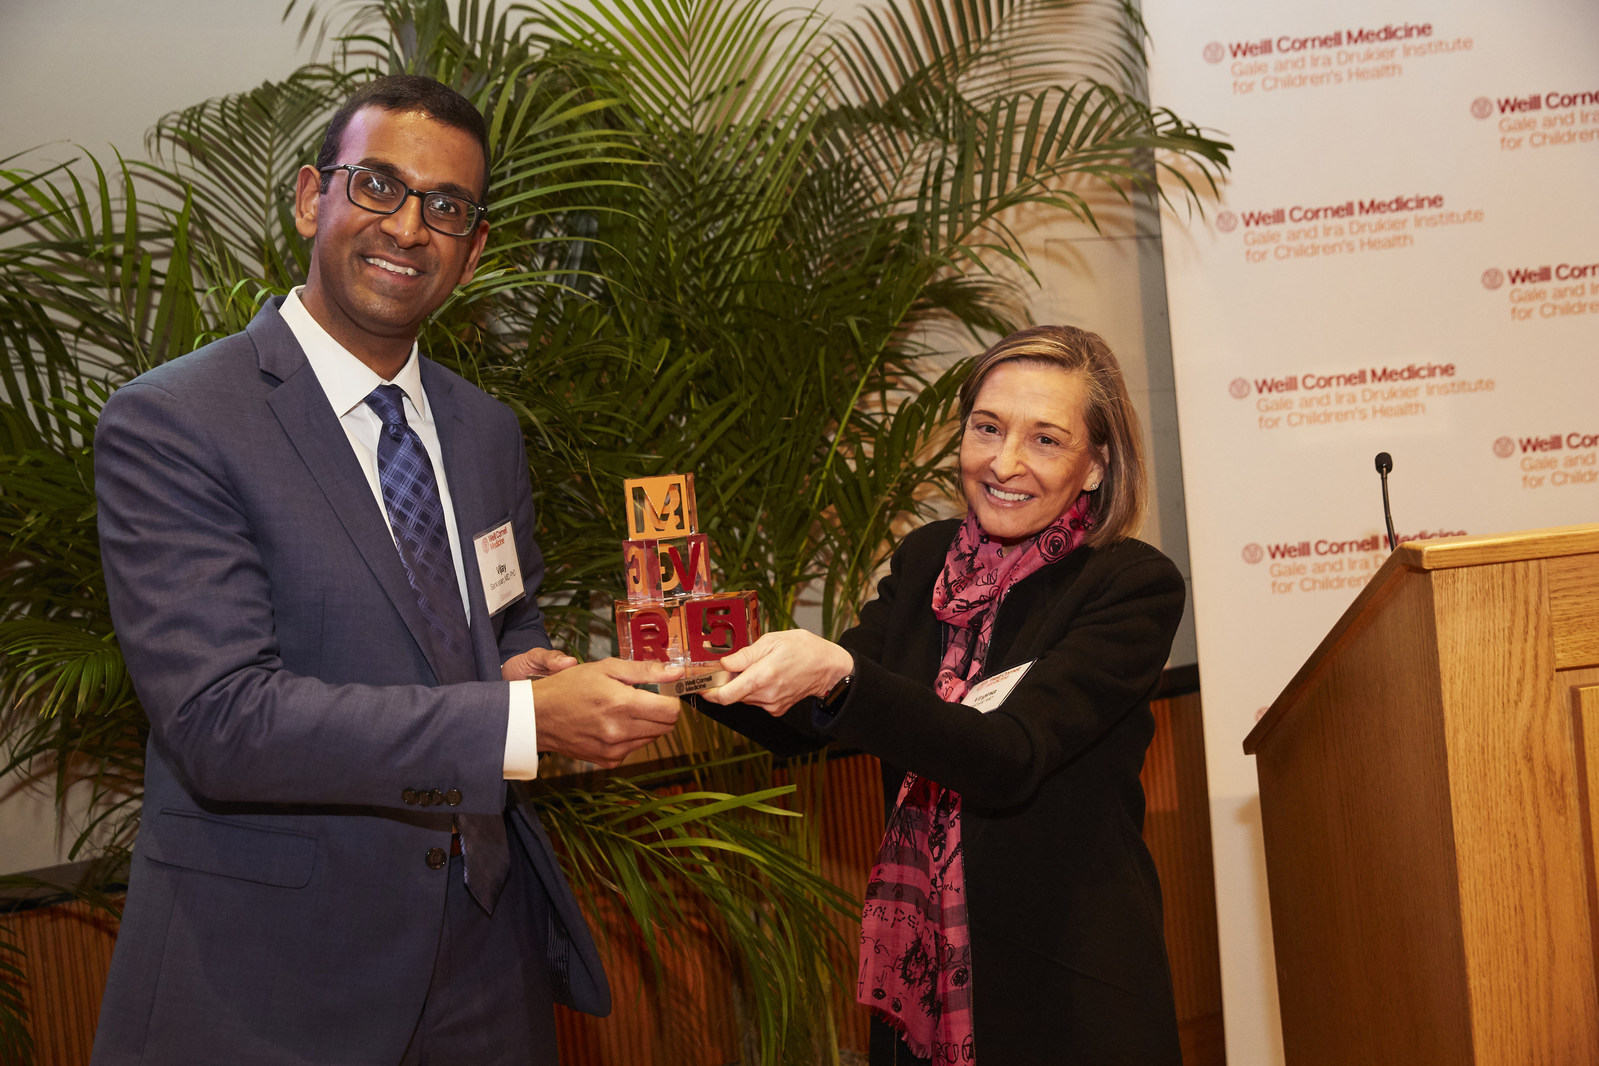 Drukier Prize recipient Dr. Vijay Sankaran with Dr. Virginia Pascual.